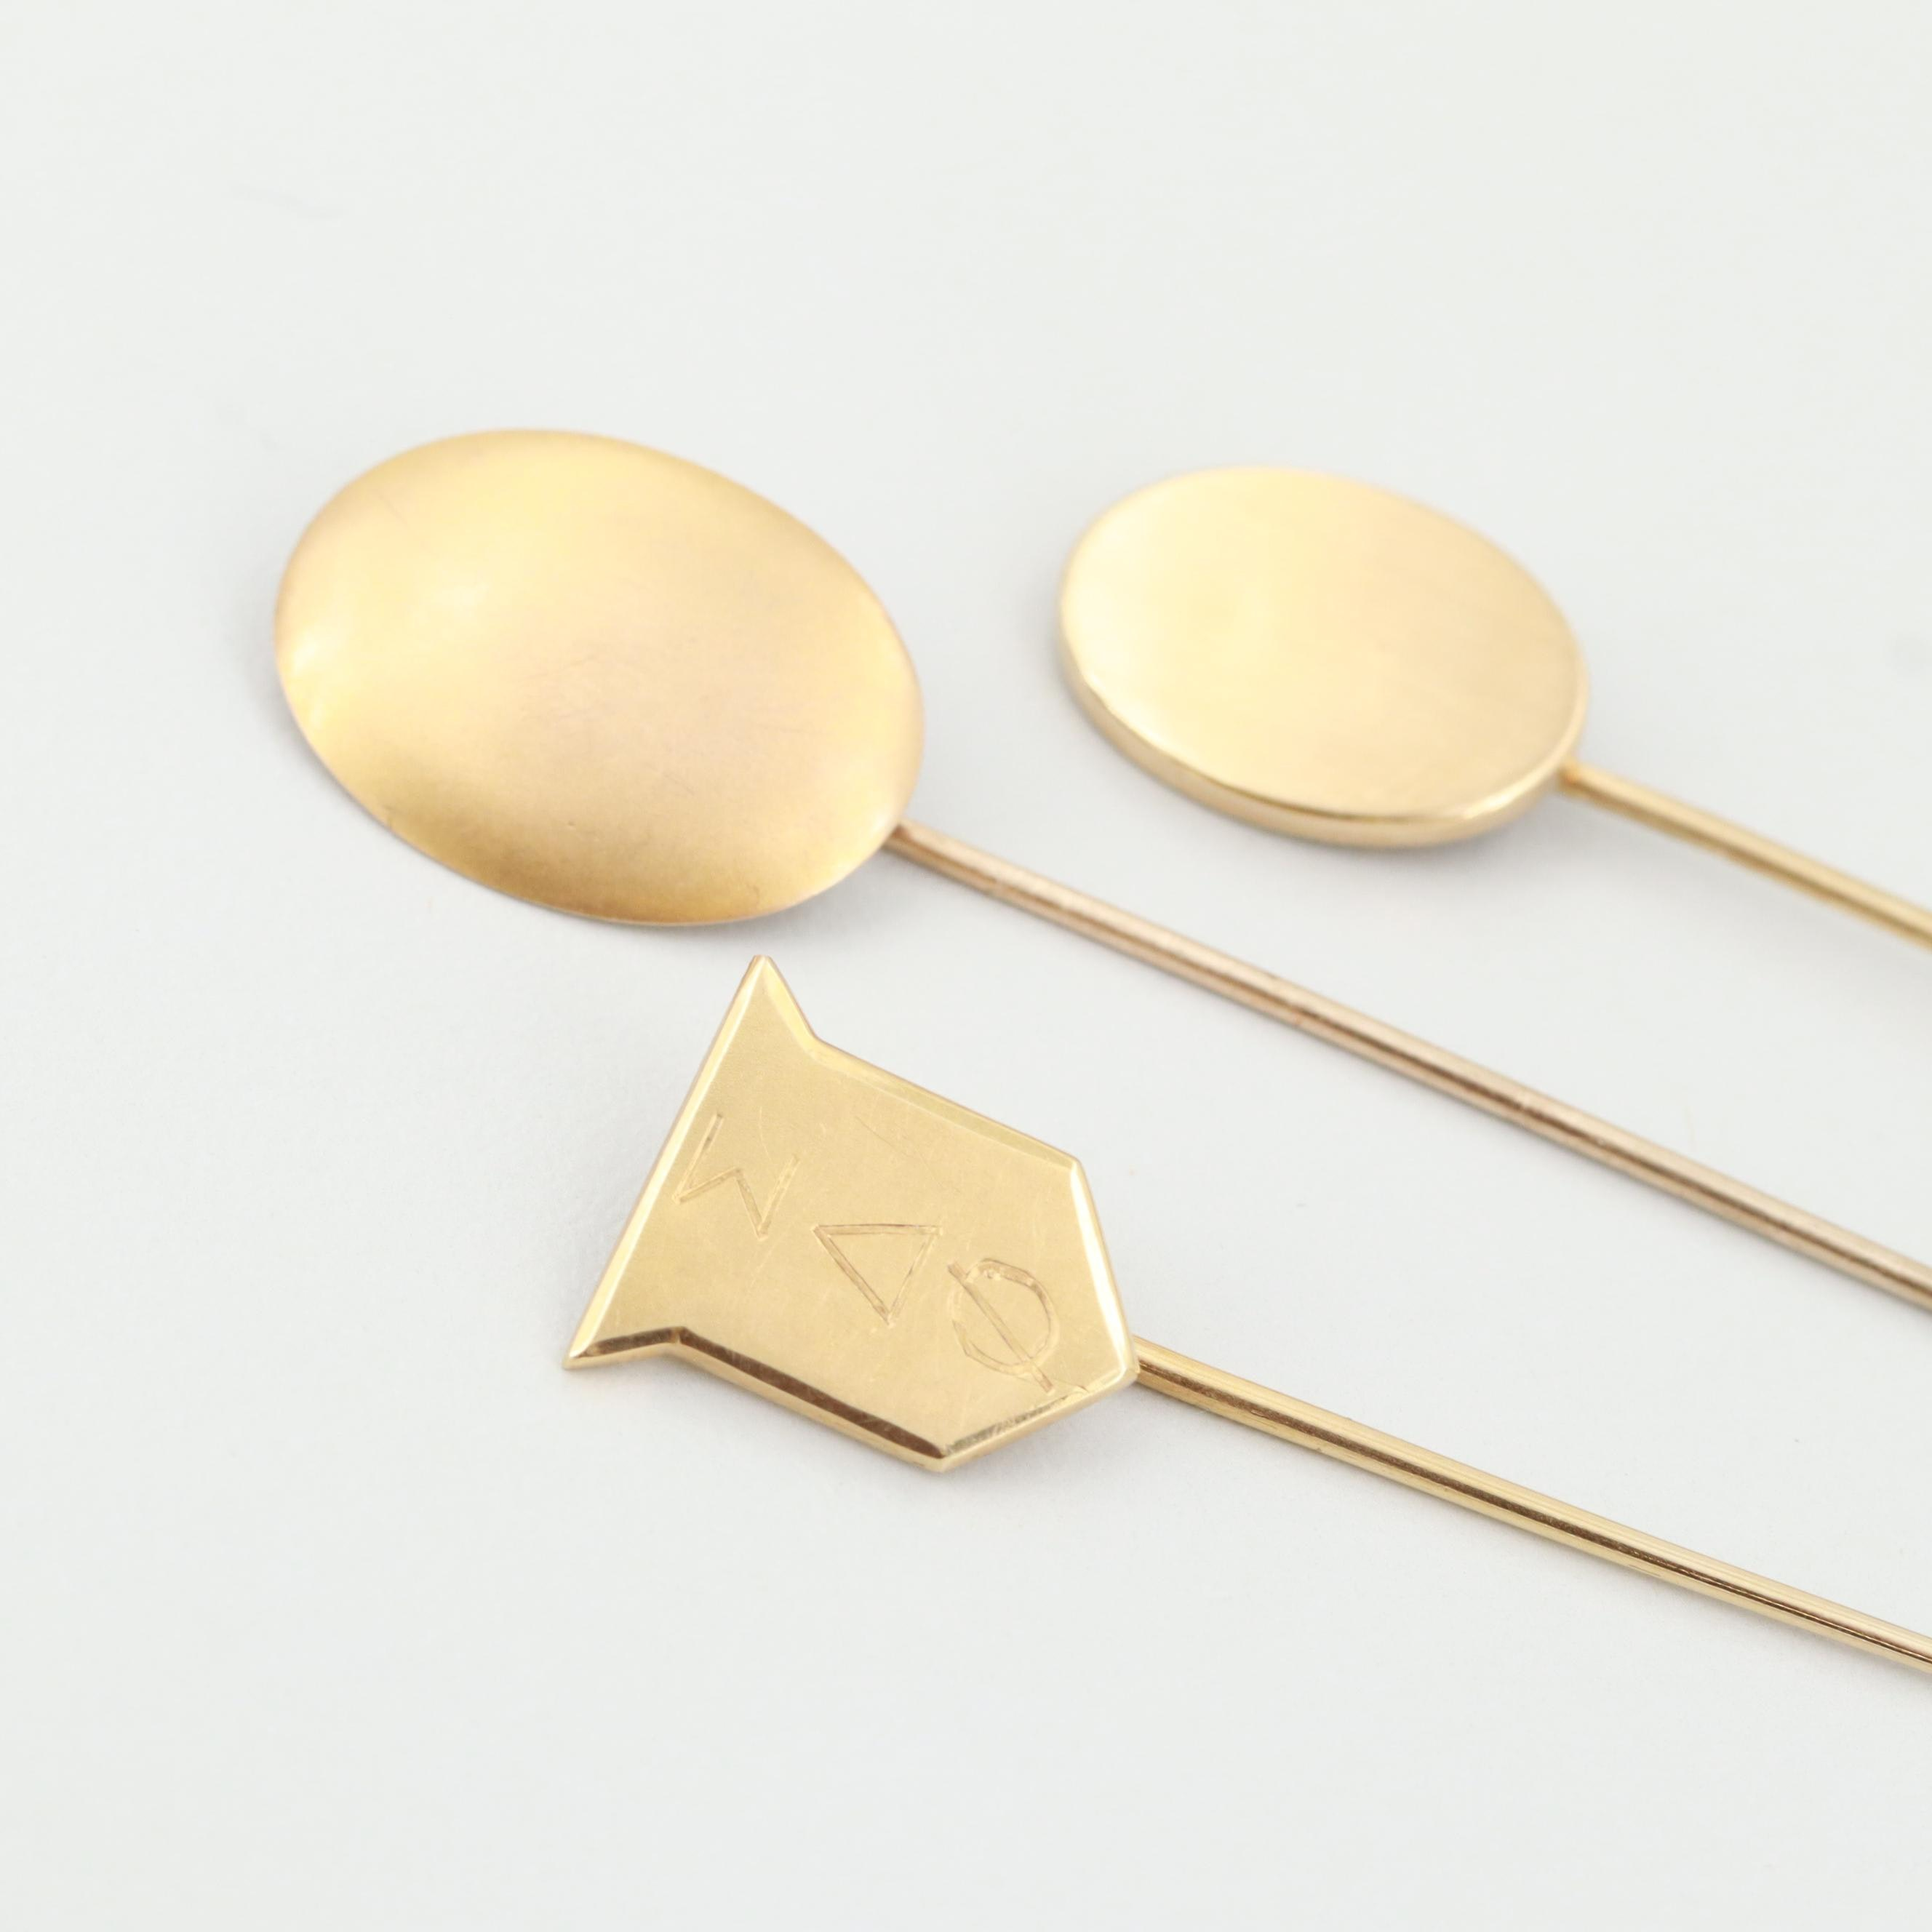 10K Yellow Gold Pin with Two Gold Tone Pins